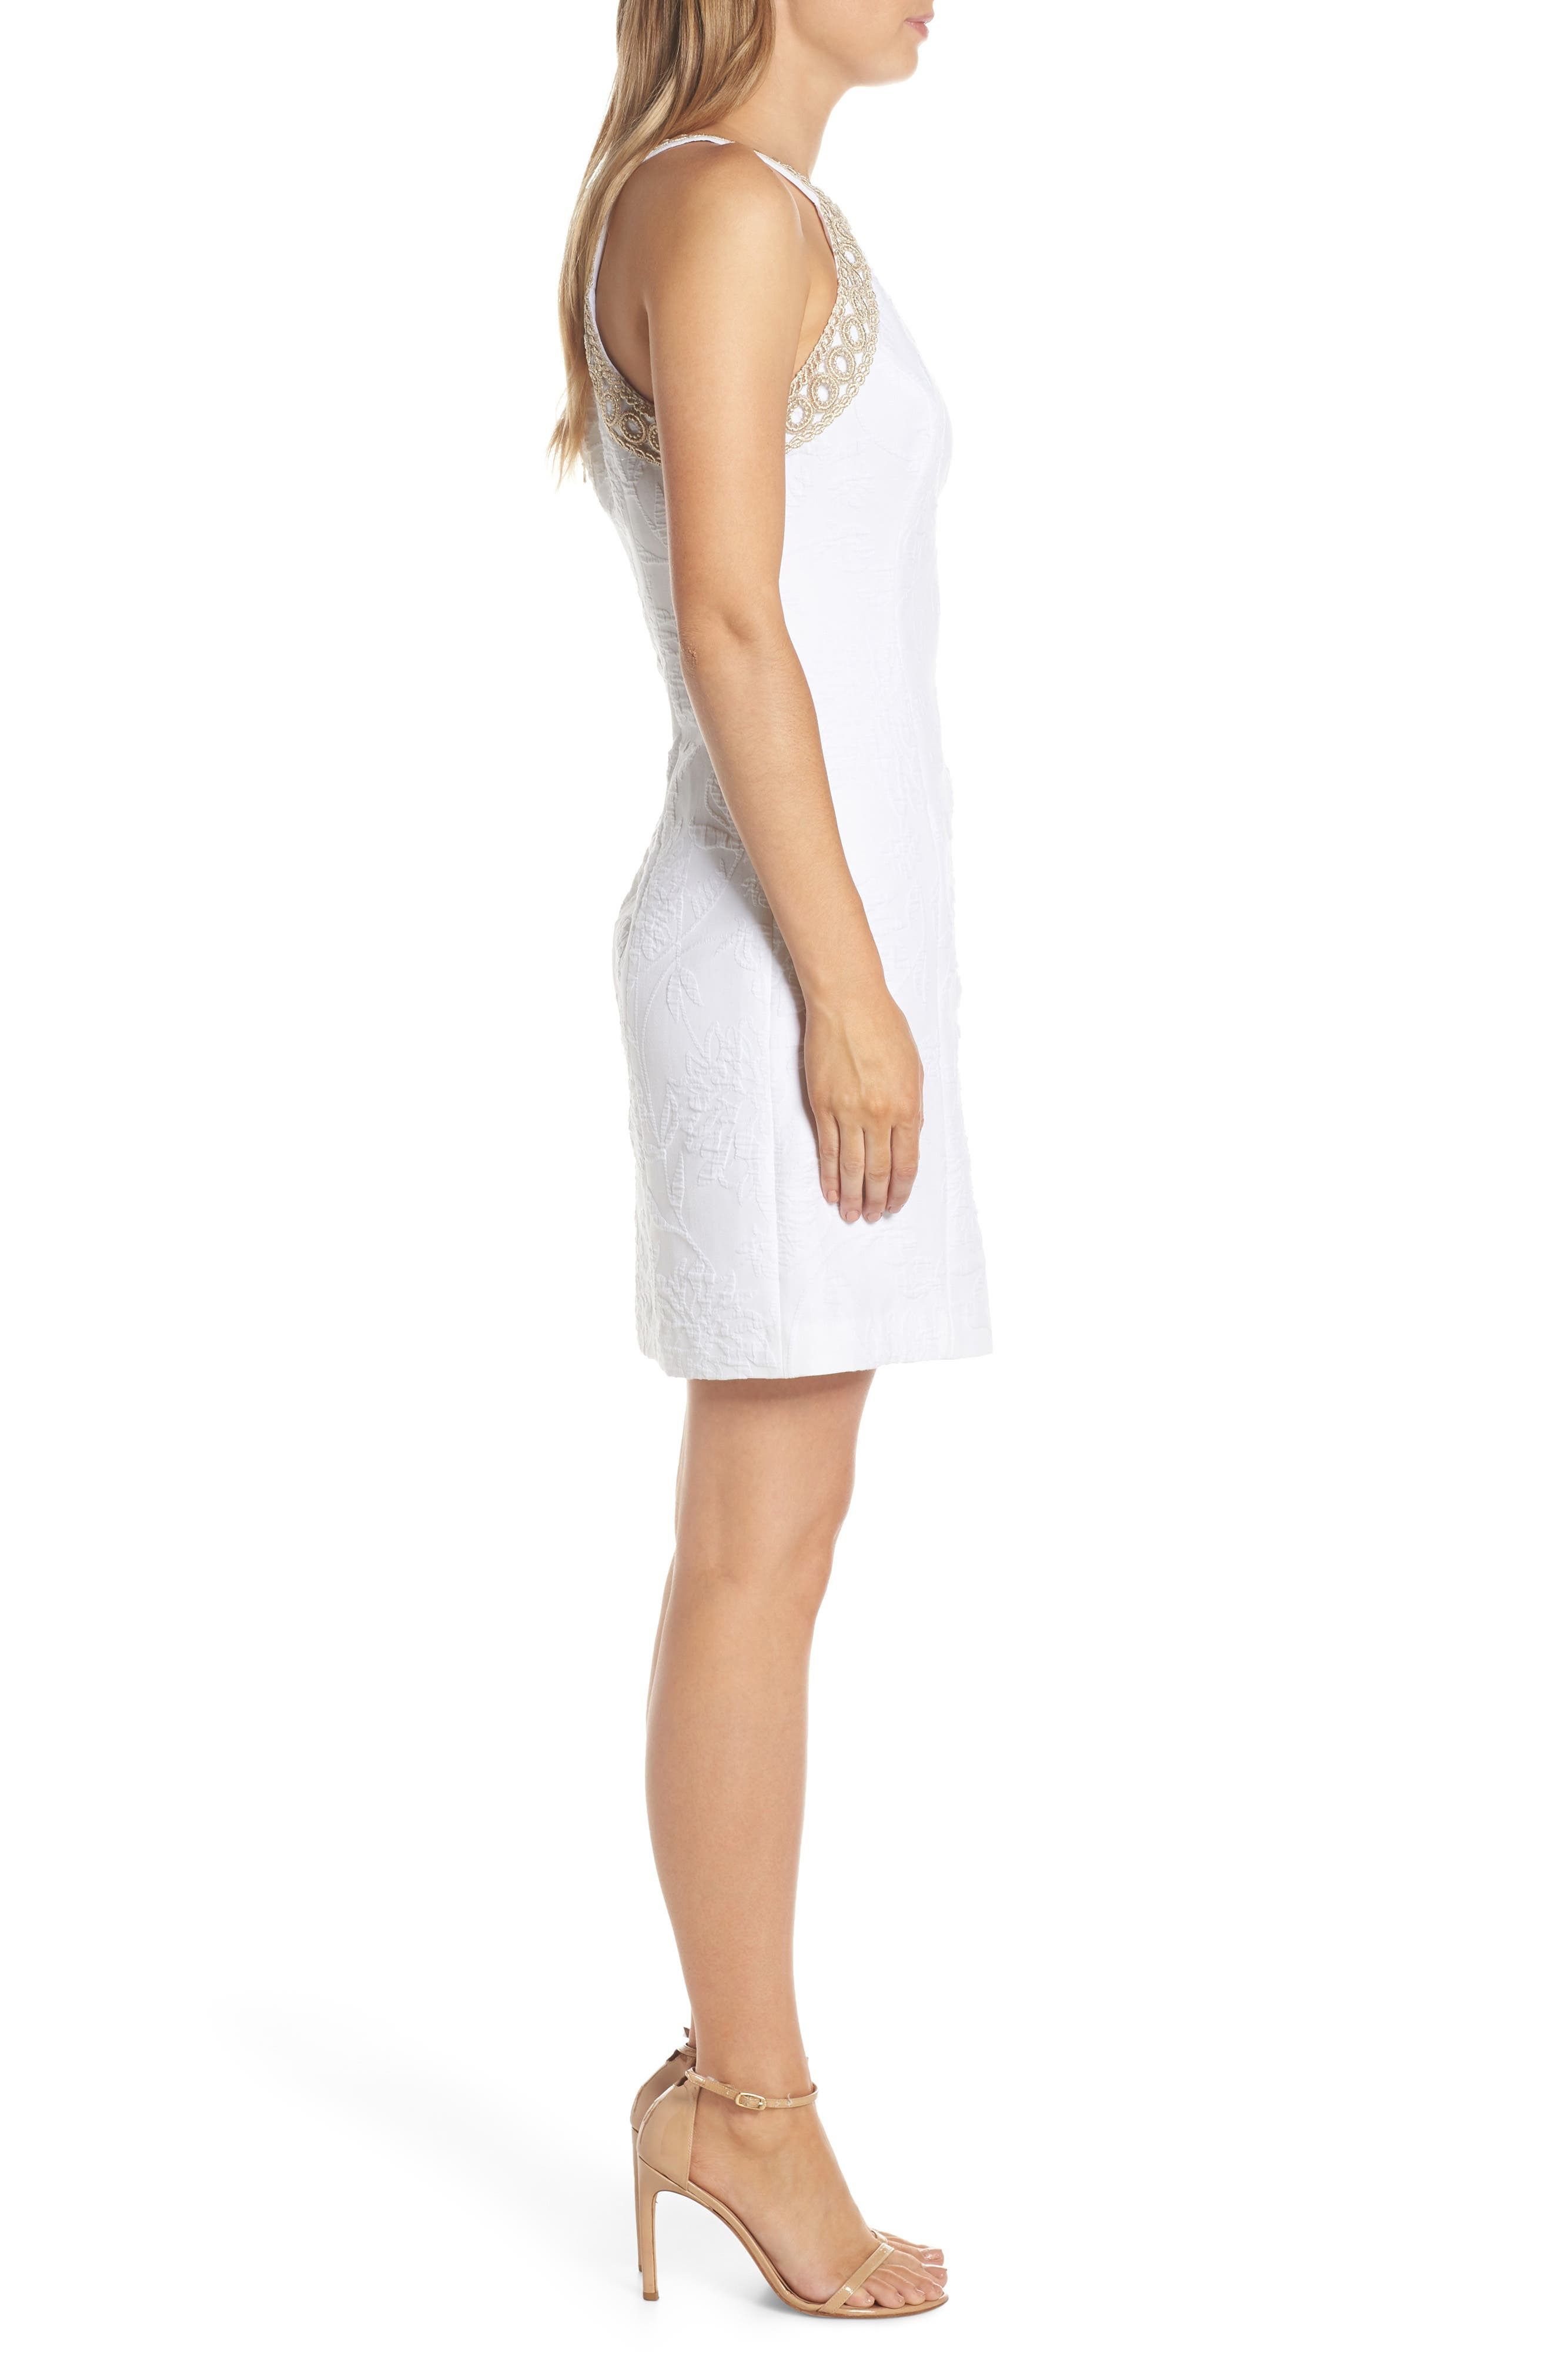 Pearl Stretch Shift Dress,                             Alternate thumbnail 3, color,                             RESORT WHITE CALIENTE PU